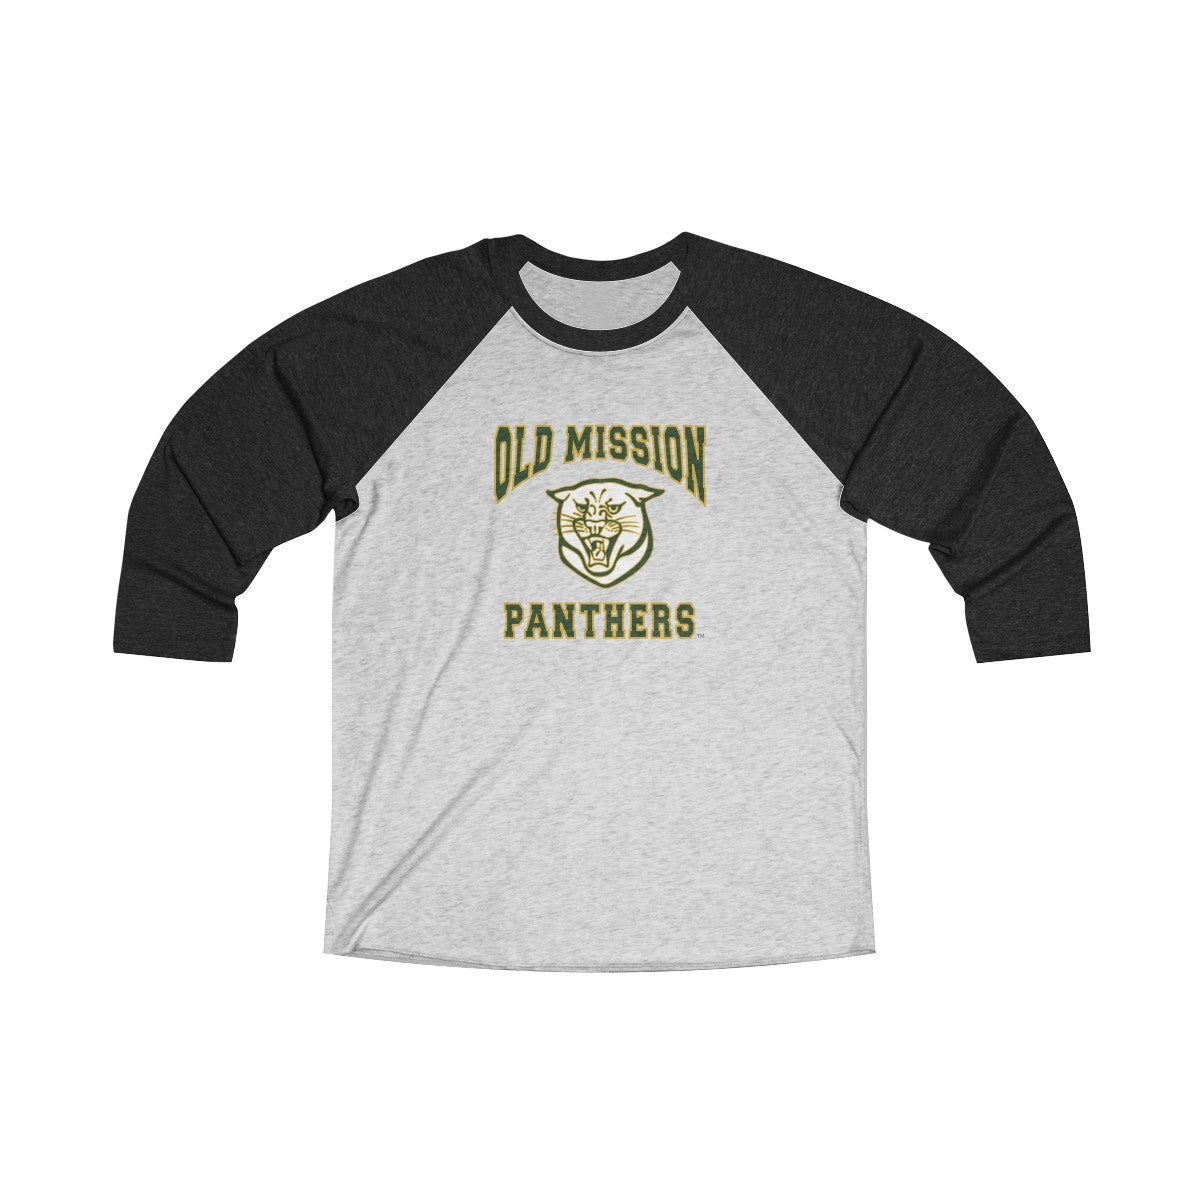 Old Mission Panthers Unisex 3/4 Raglan Tee